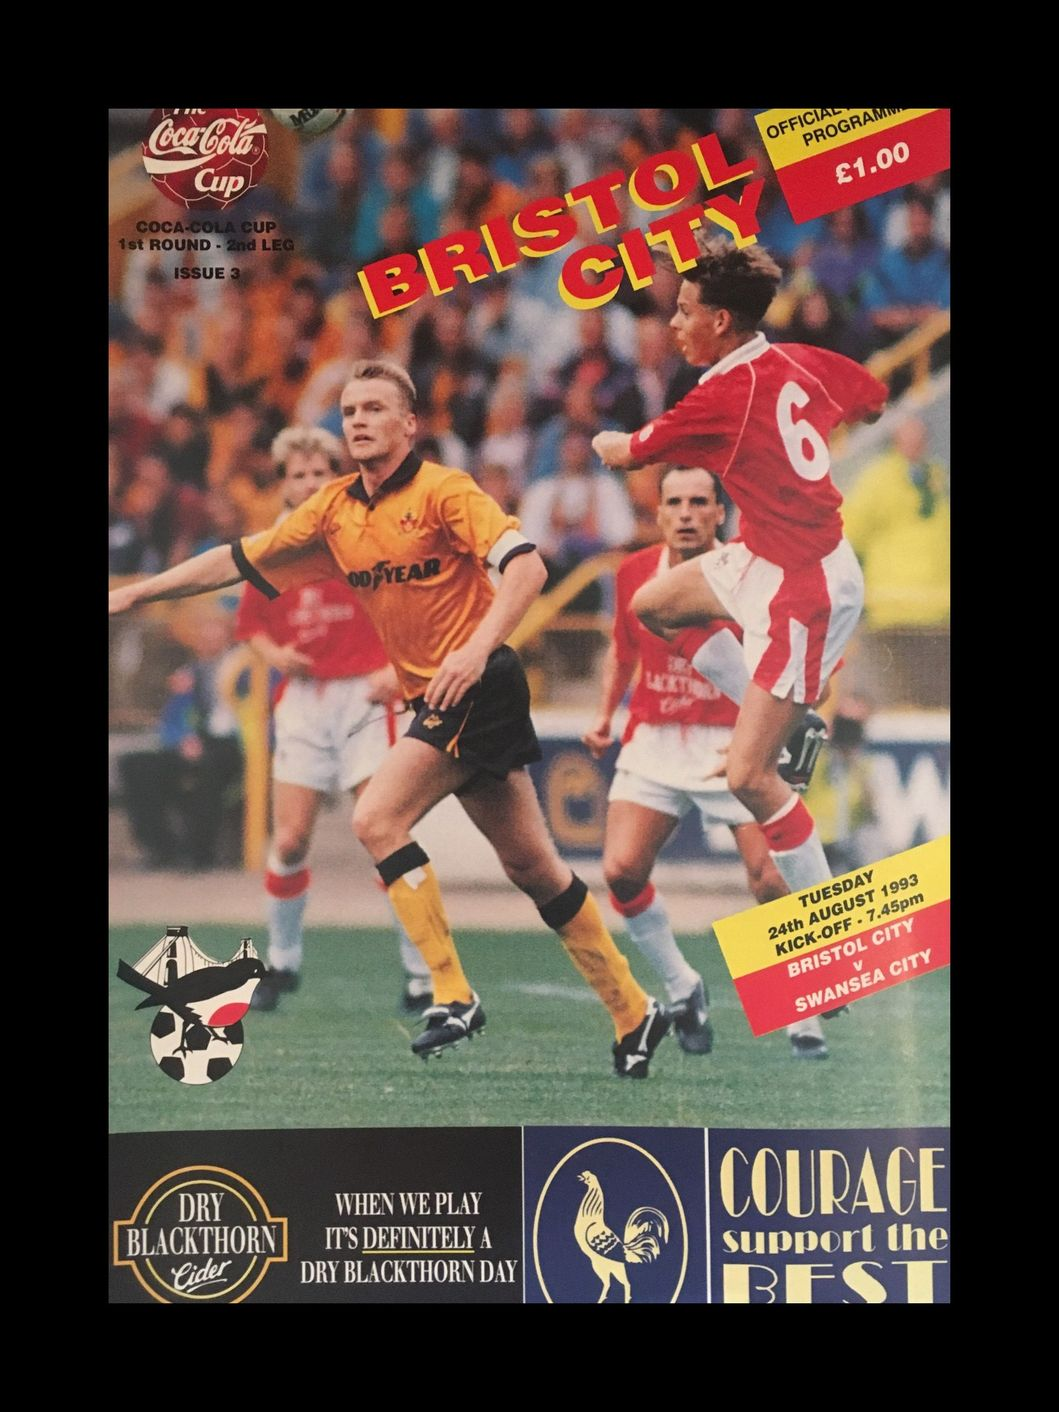 Bristol City v Swansea City 24-08-1993 Programme